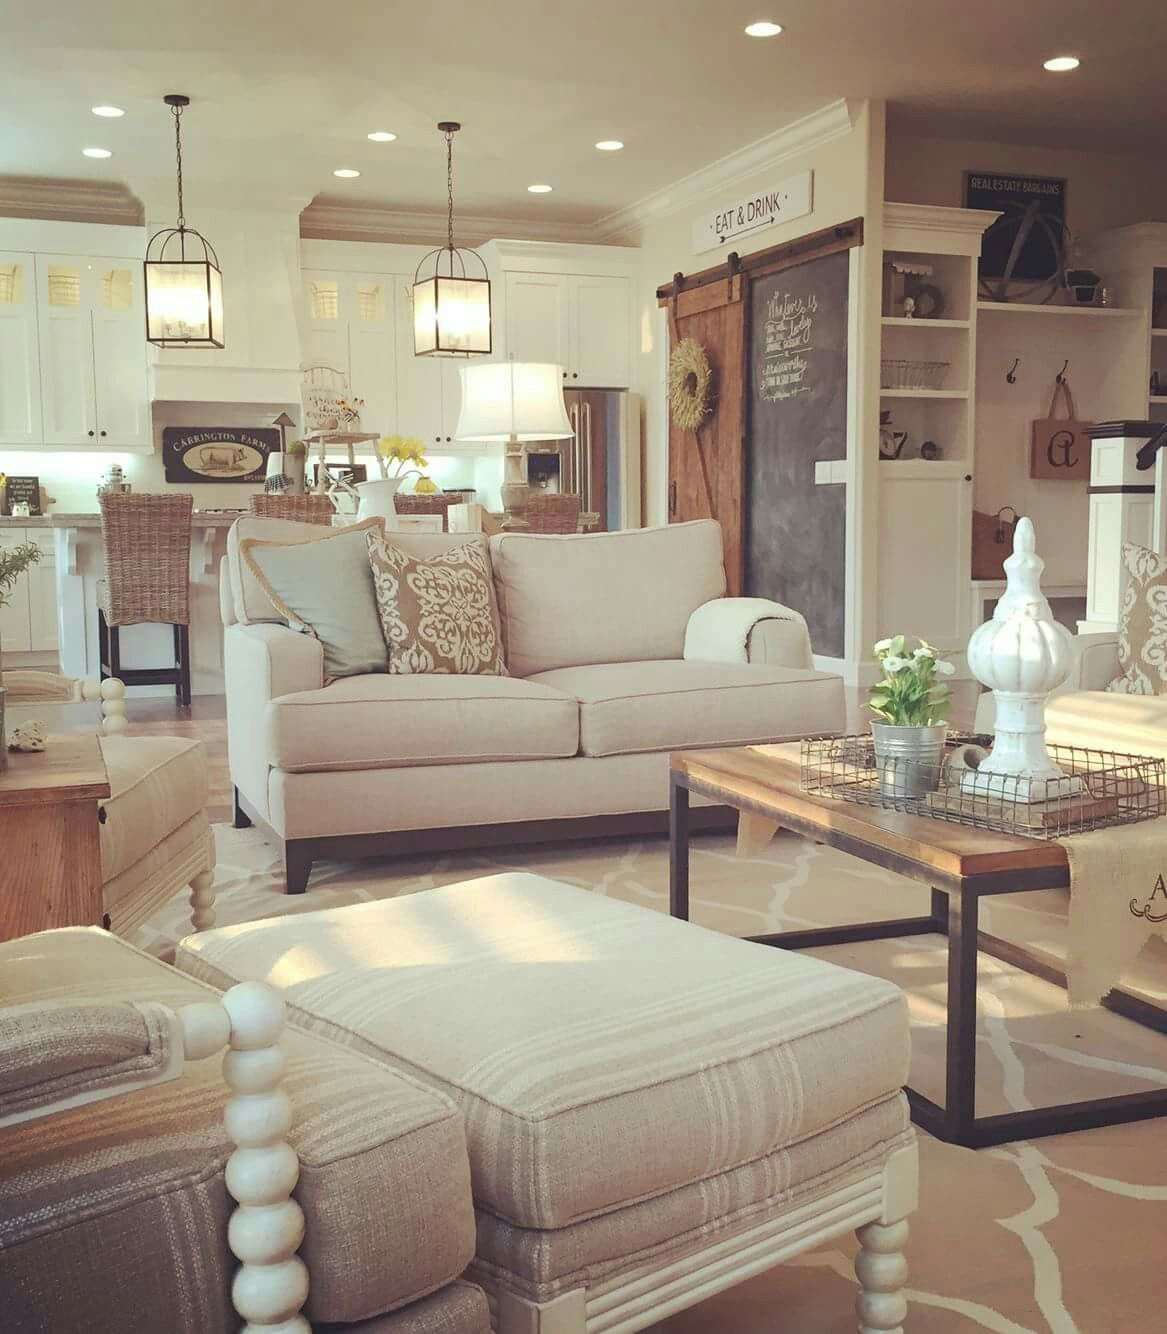 This is my kitchen theme...cream/white with proper wood